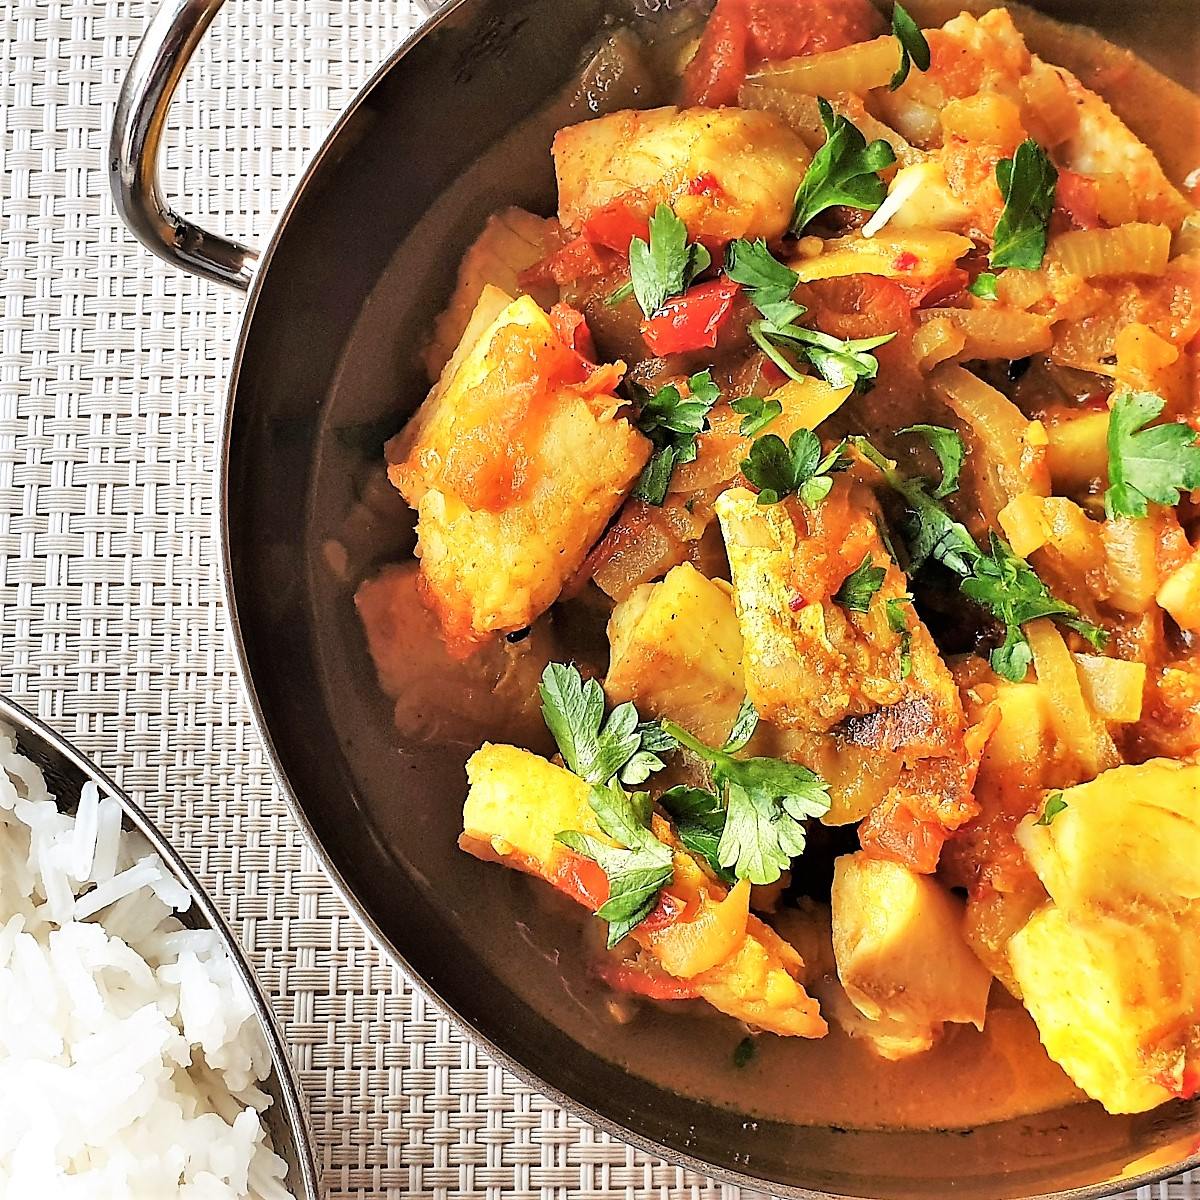 Fish curry in a balti dish next to a dish of white rice.